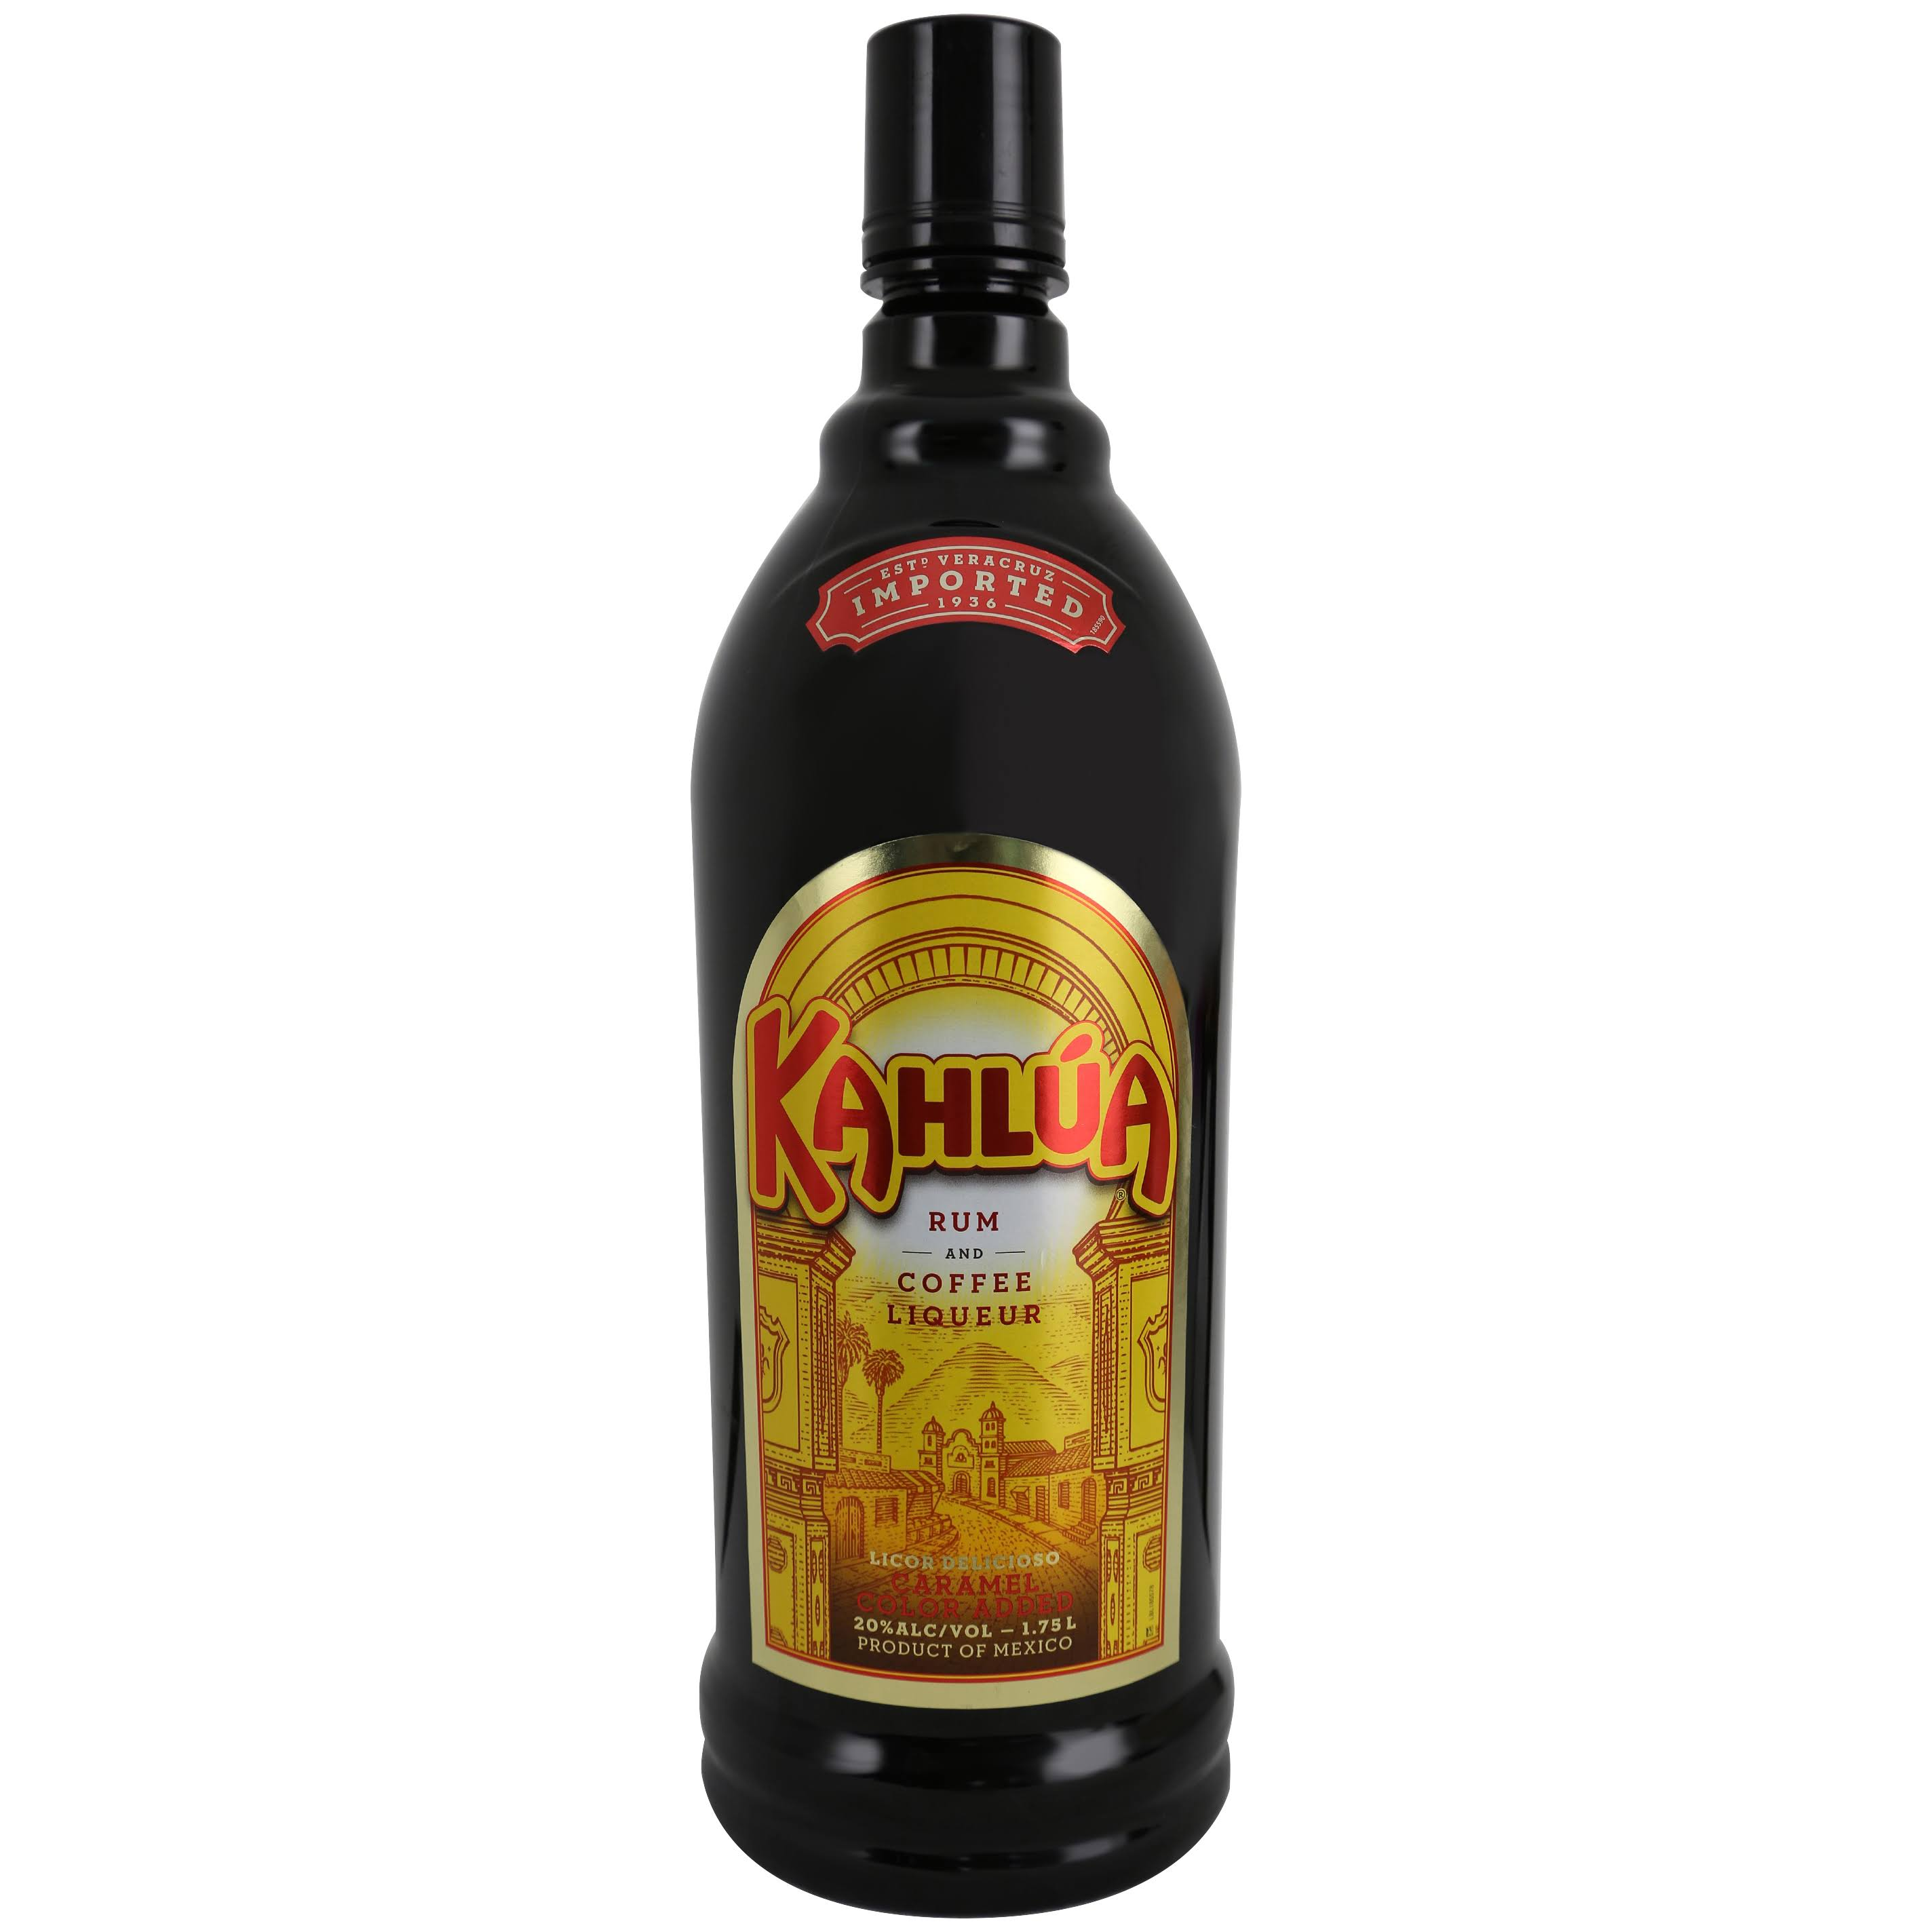 Kahlua Rum and Coffee Liqueur - 1.75 L